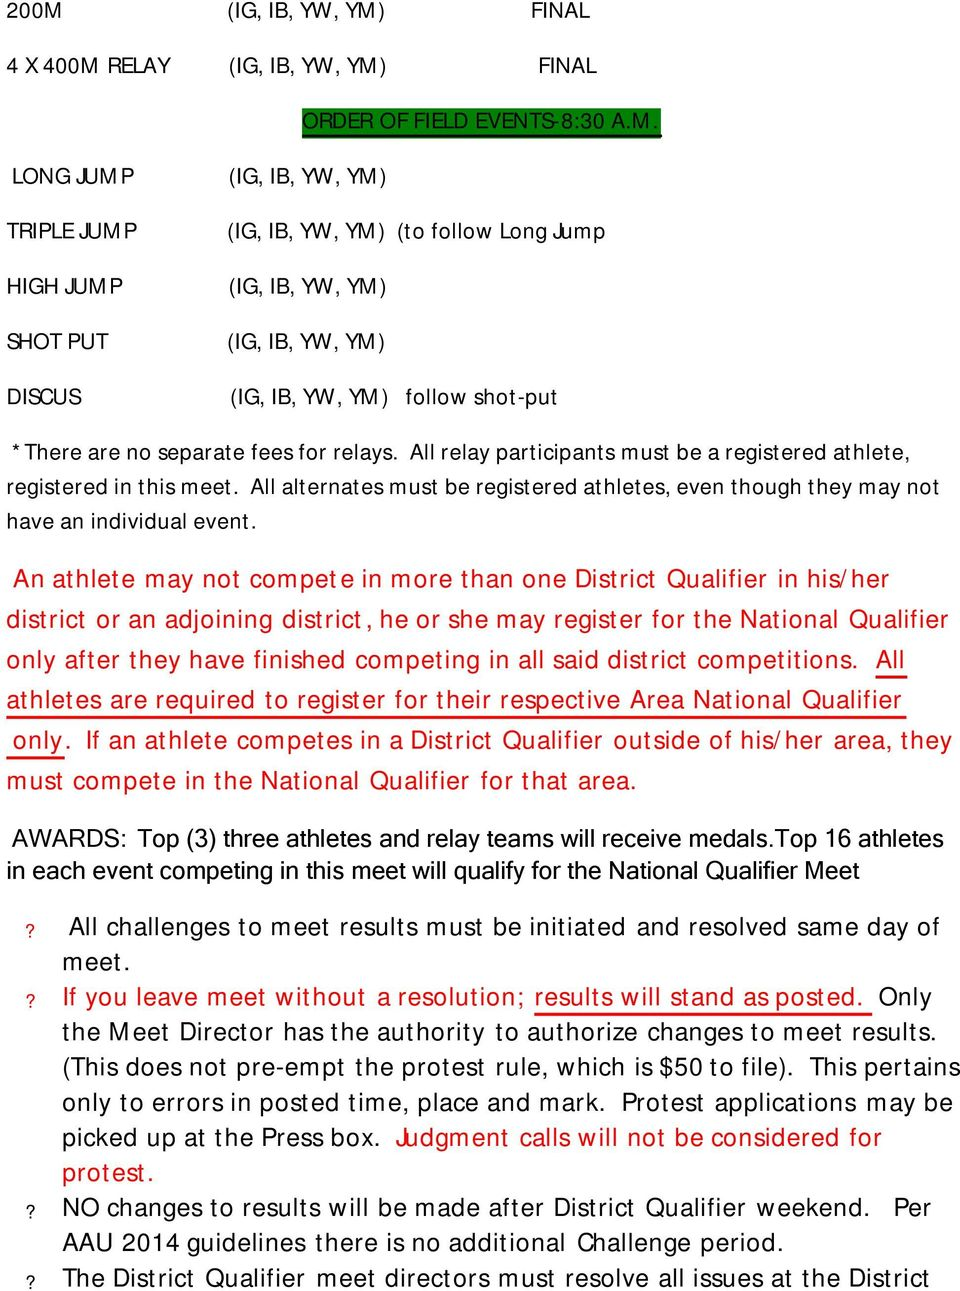 An athlete may not compete in more than one District Qualifier in his/her district or an adjoining district, he or she may register for the National Qualifier only after they have finished competing